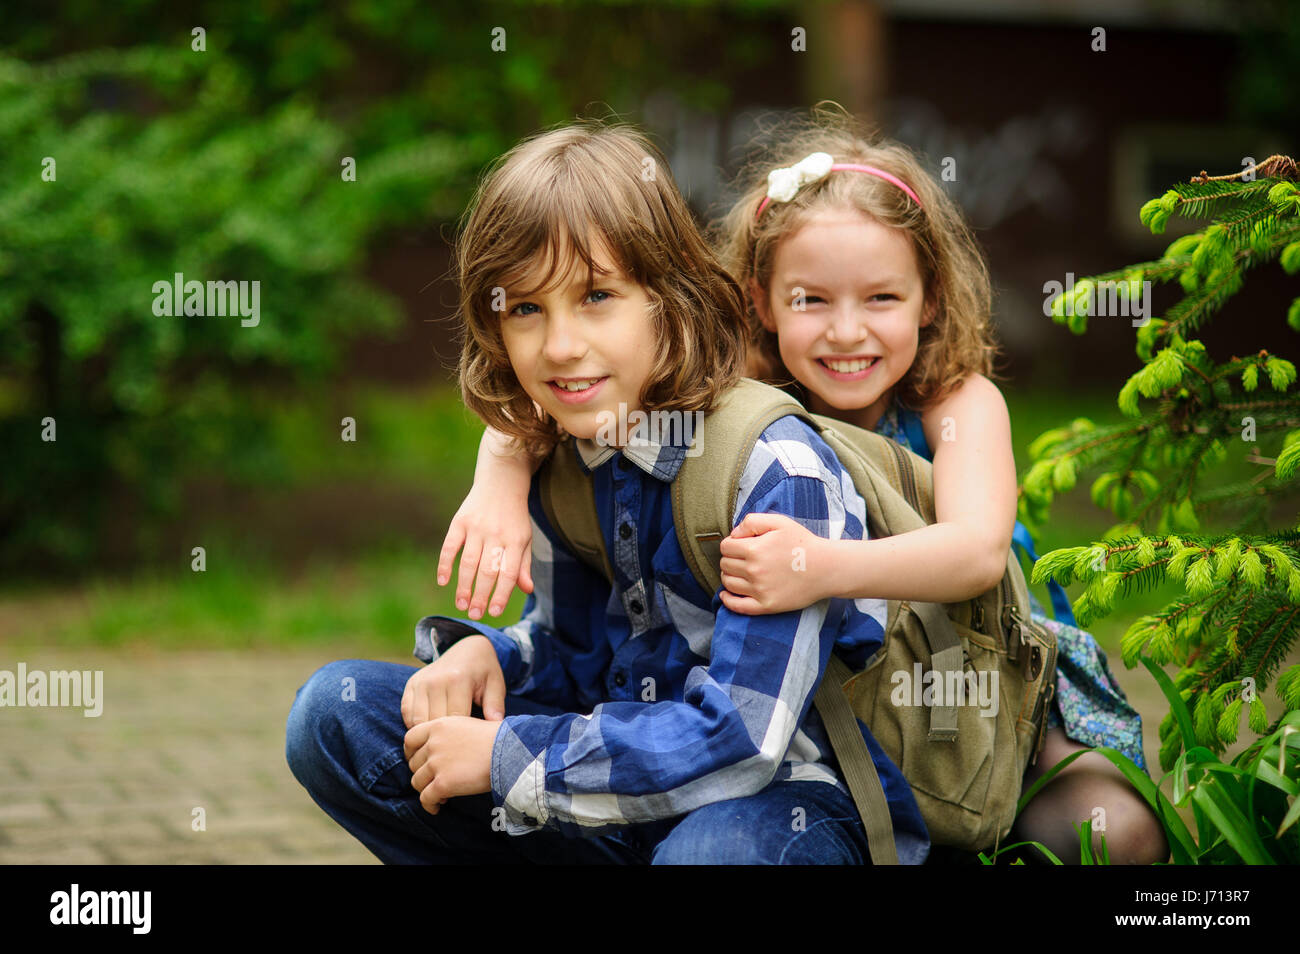 Two children of younger school age, the boy and the girl, squat having embraced. Warm spring day. School students - Stock Image